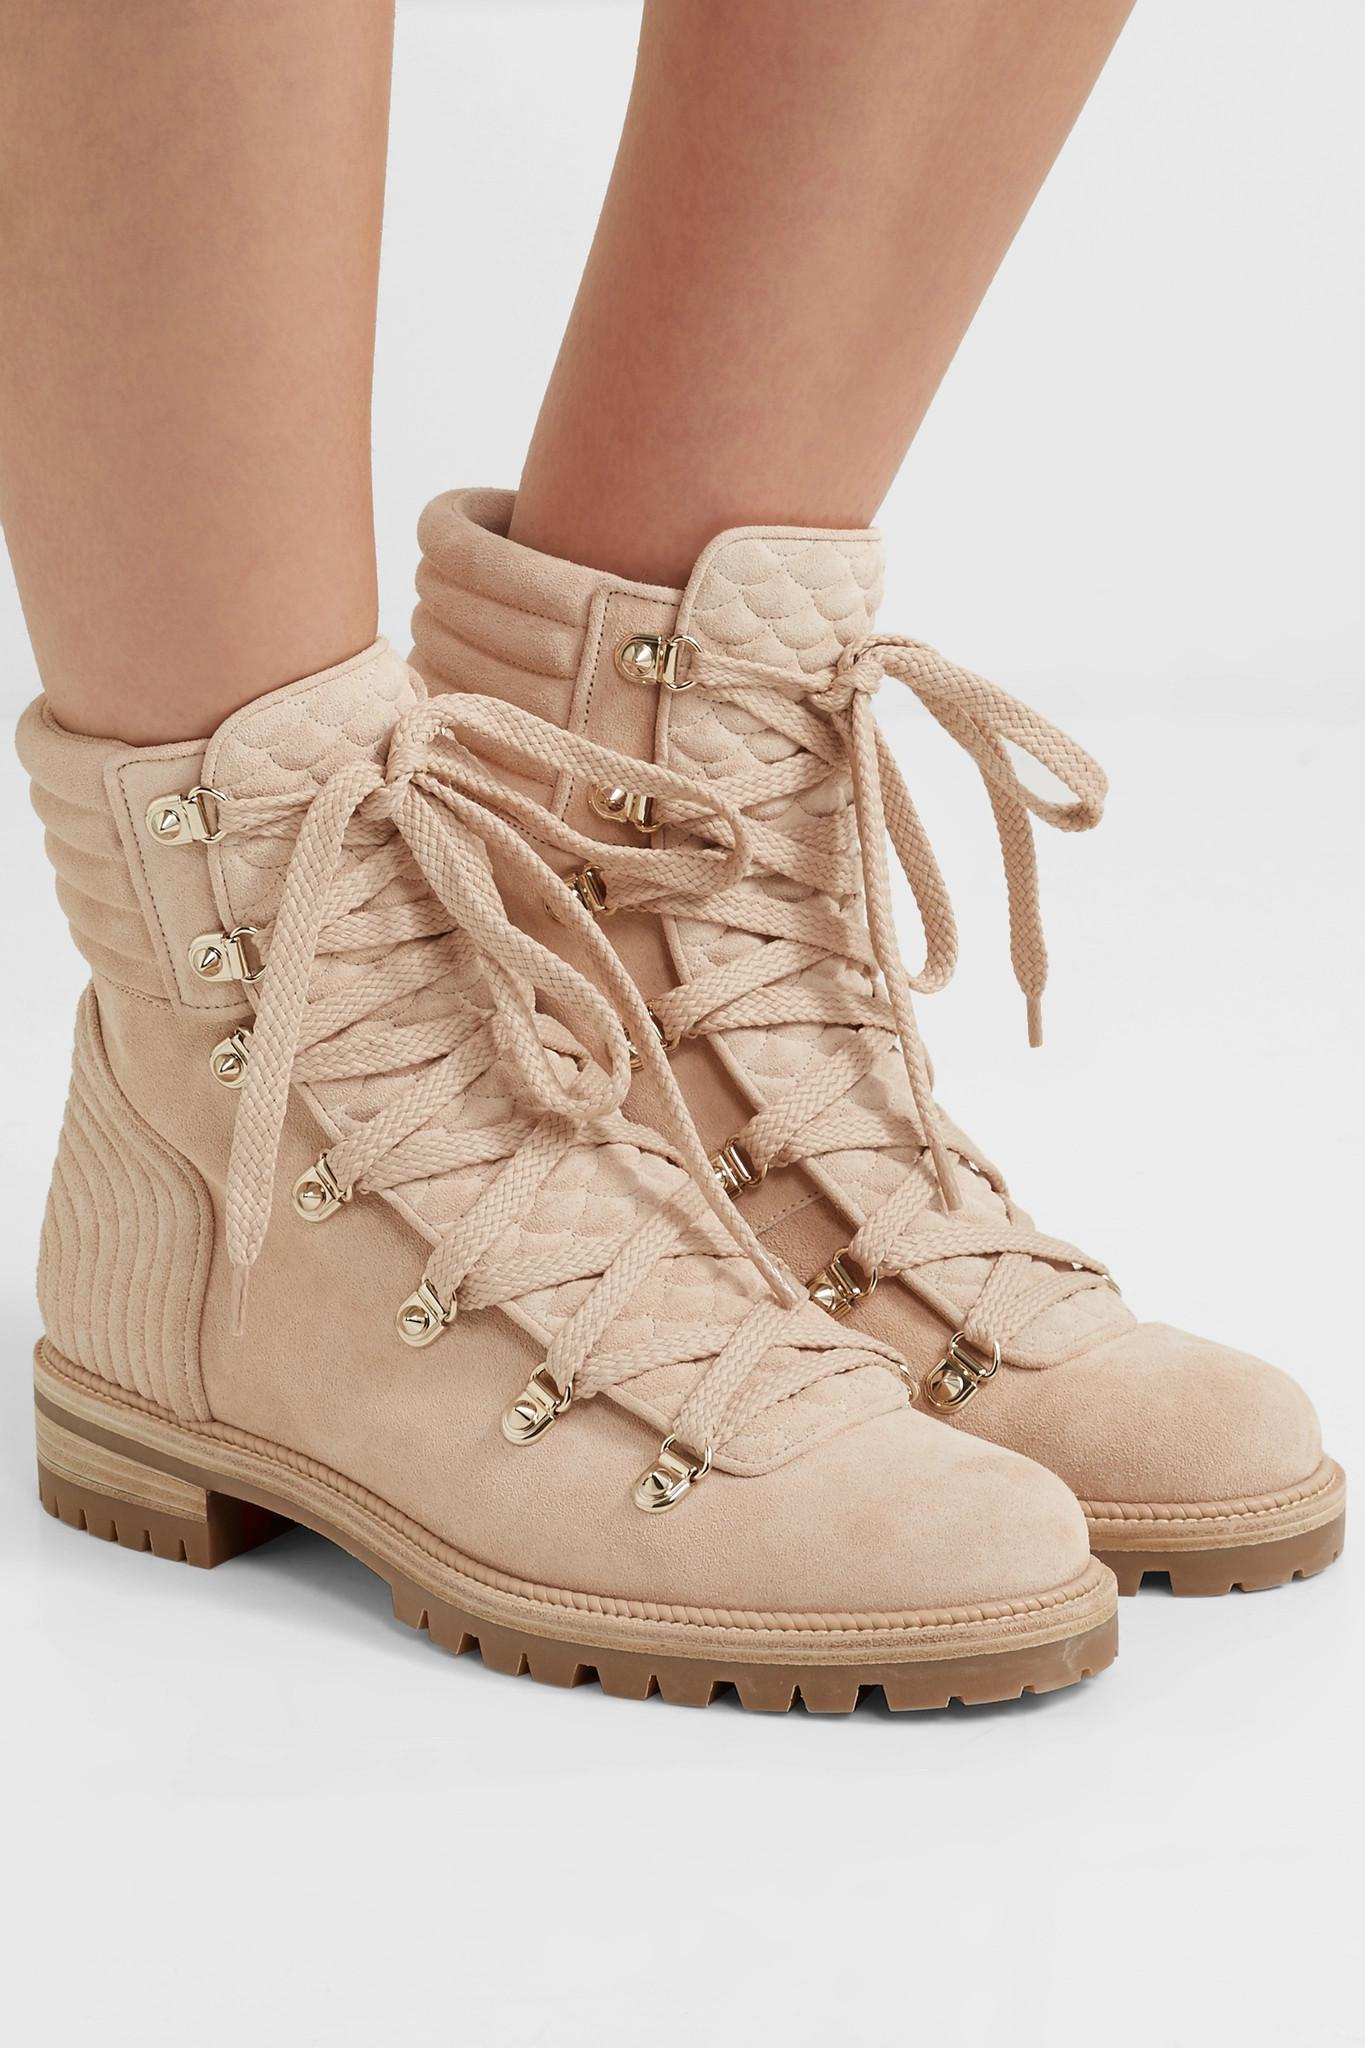 c5b86a21e528 Christian Louboutin - Natural Mad Spiked Quilted Suede Ankle Boots - Lyst.  View fullscreen